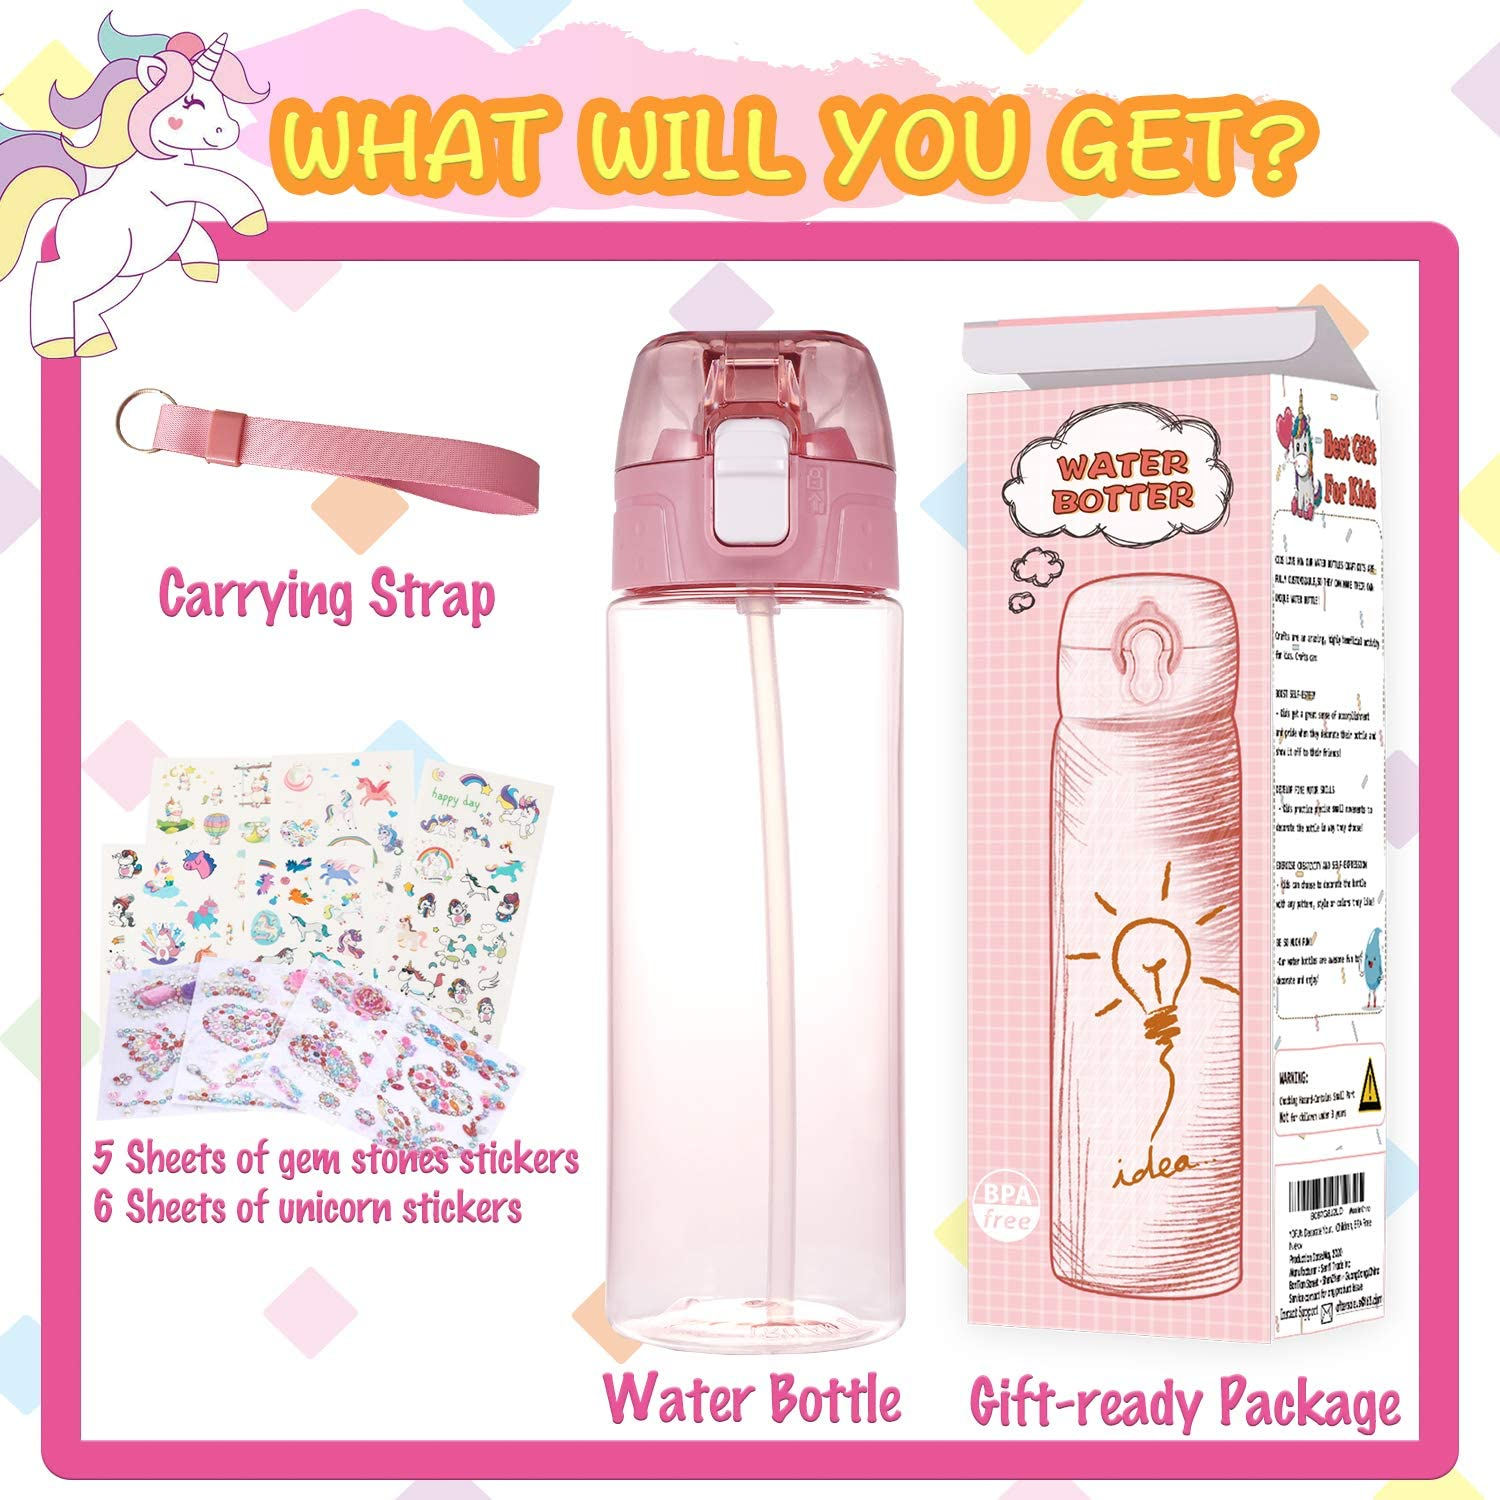 Kids Craft Kit /& DIY Art 20 oz BPA Free Tritan Material Gift for Girl Age 4 5 6 7 8 9 10 Years Old YOFUN Decorate Your Own Water Bottle with Tons of Glitter Gem /& Unicorn Stickers